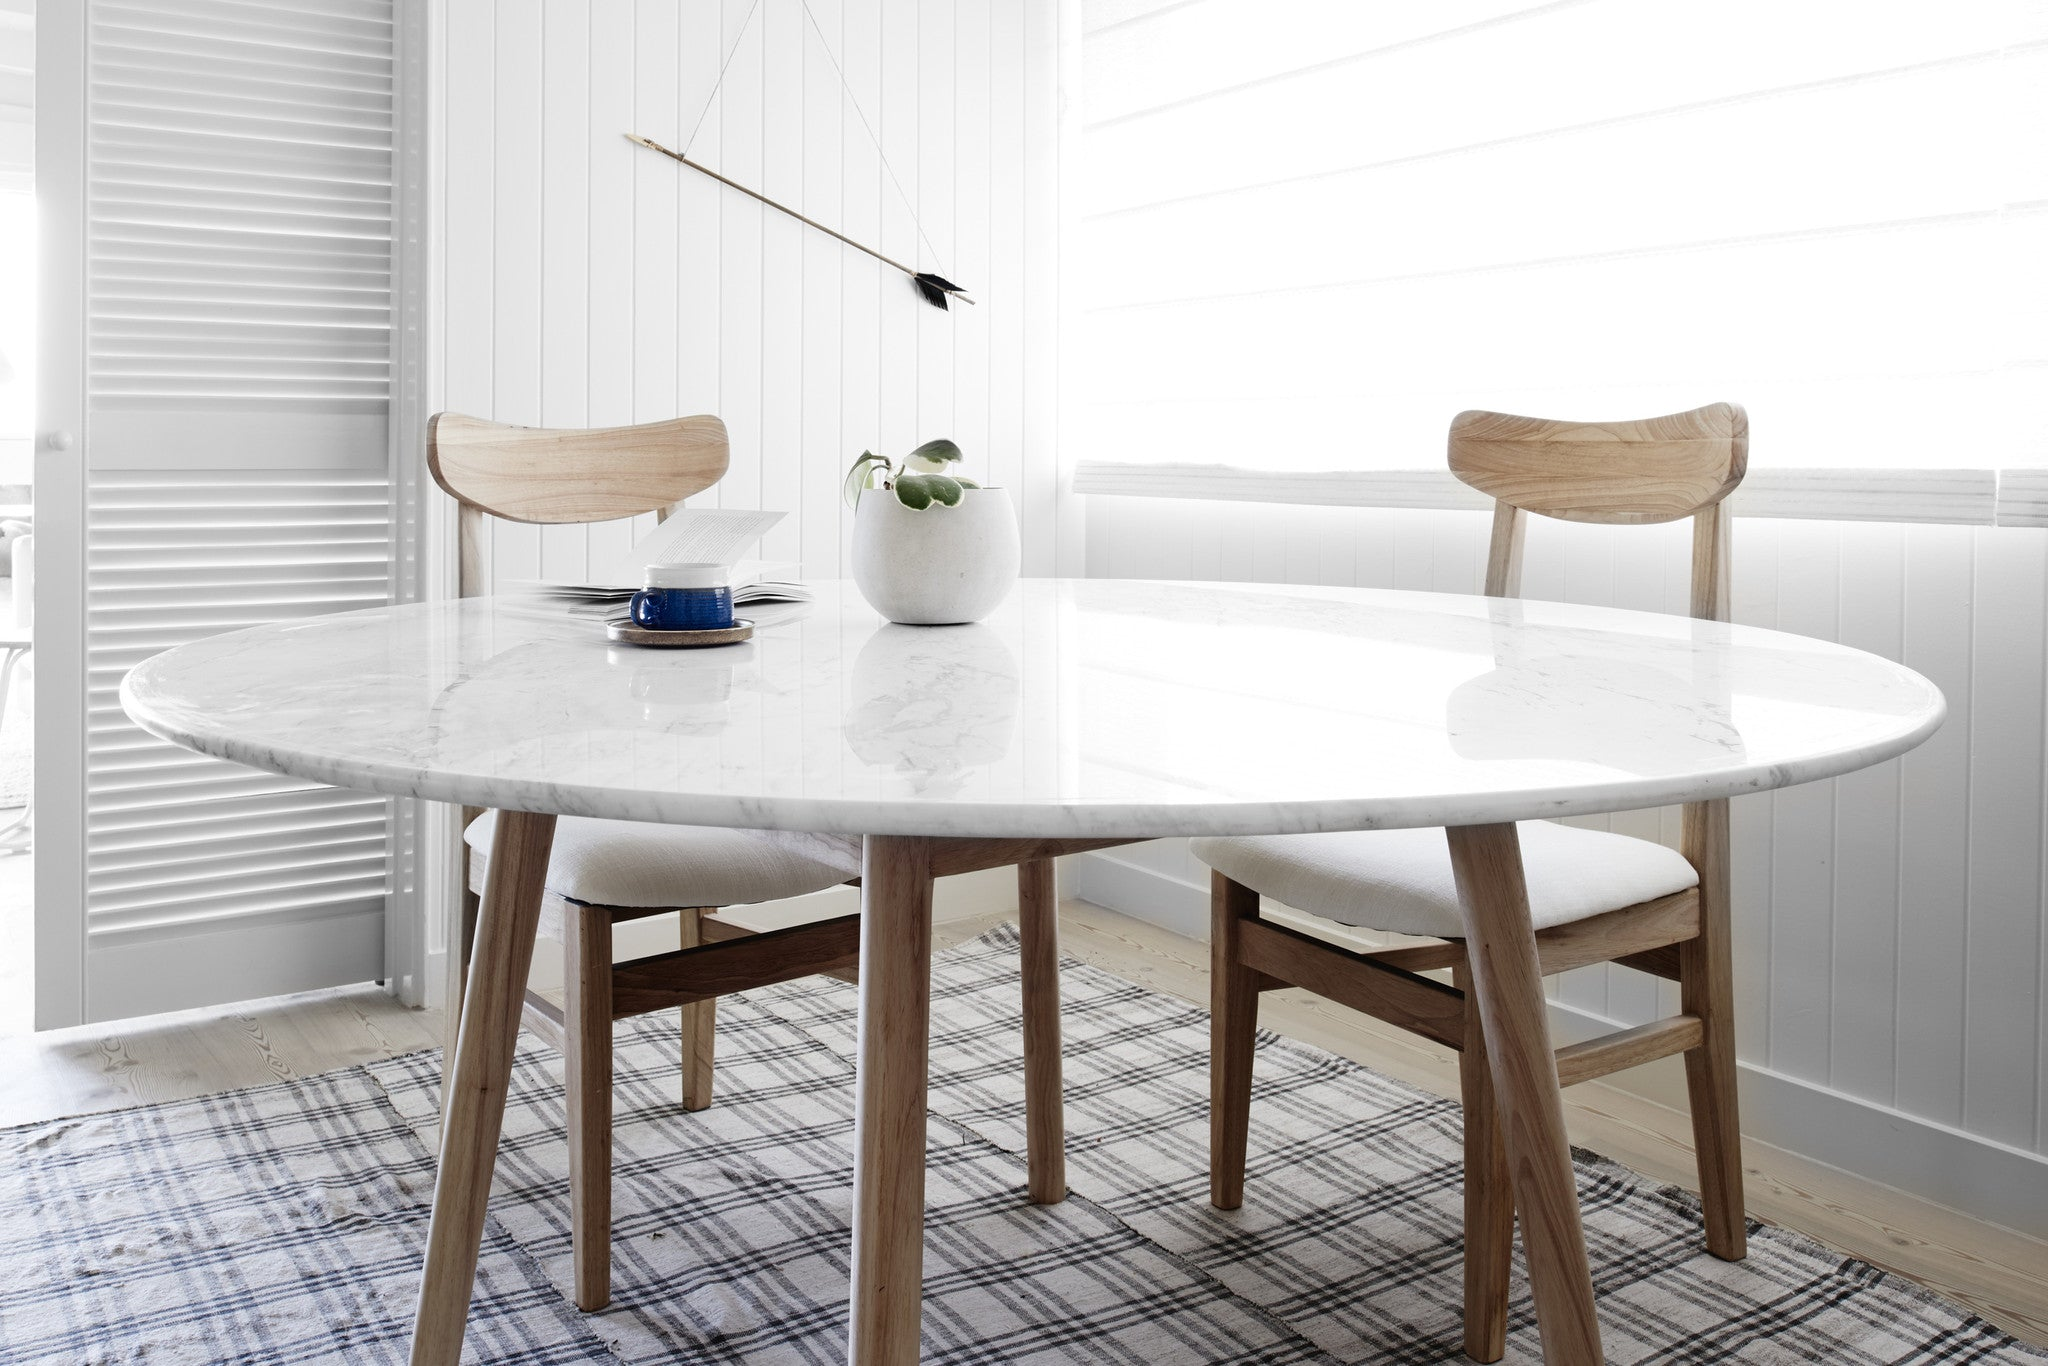 White Marble Dining Table with Walnut Timber Frame - in White Interiors